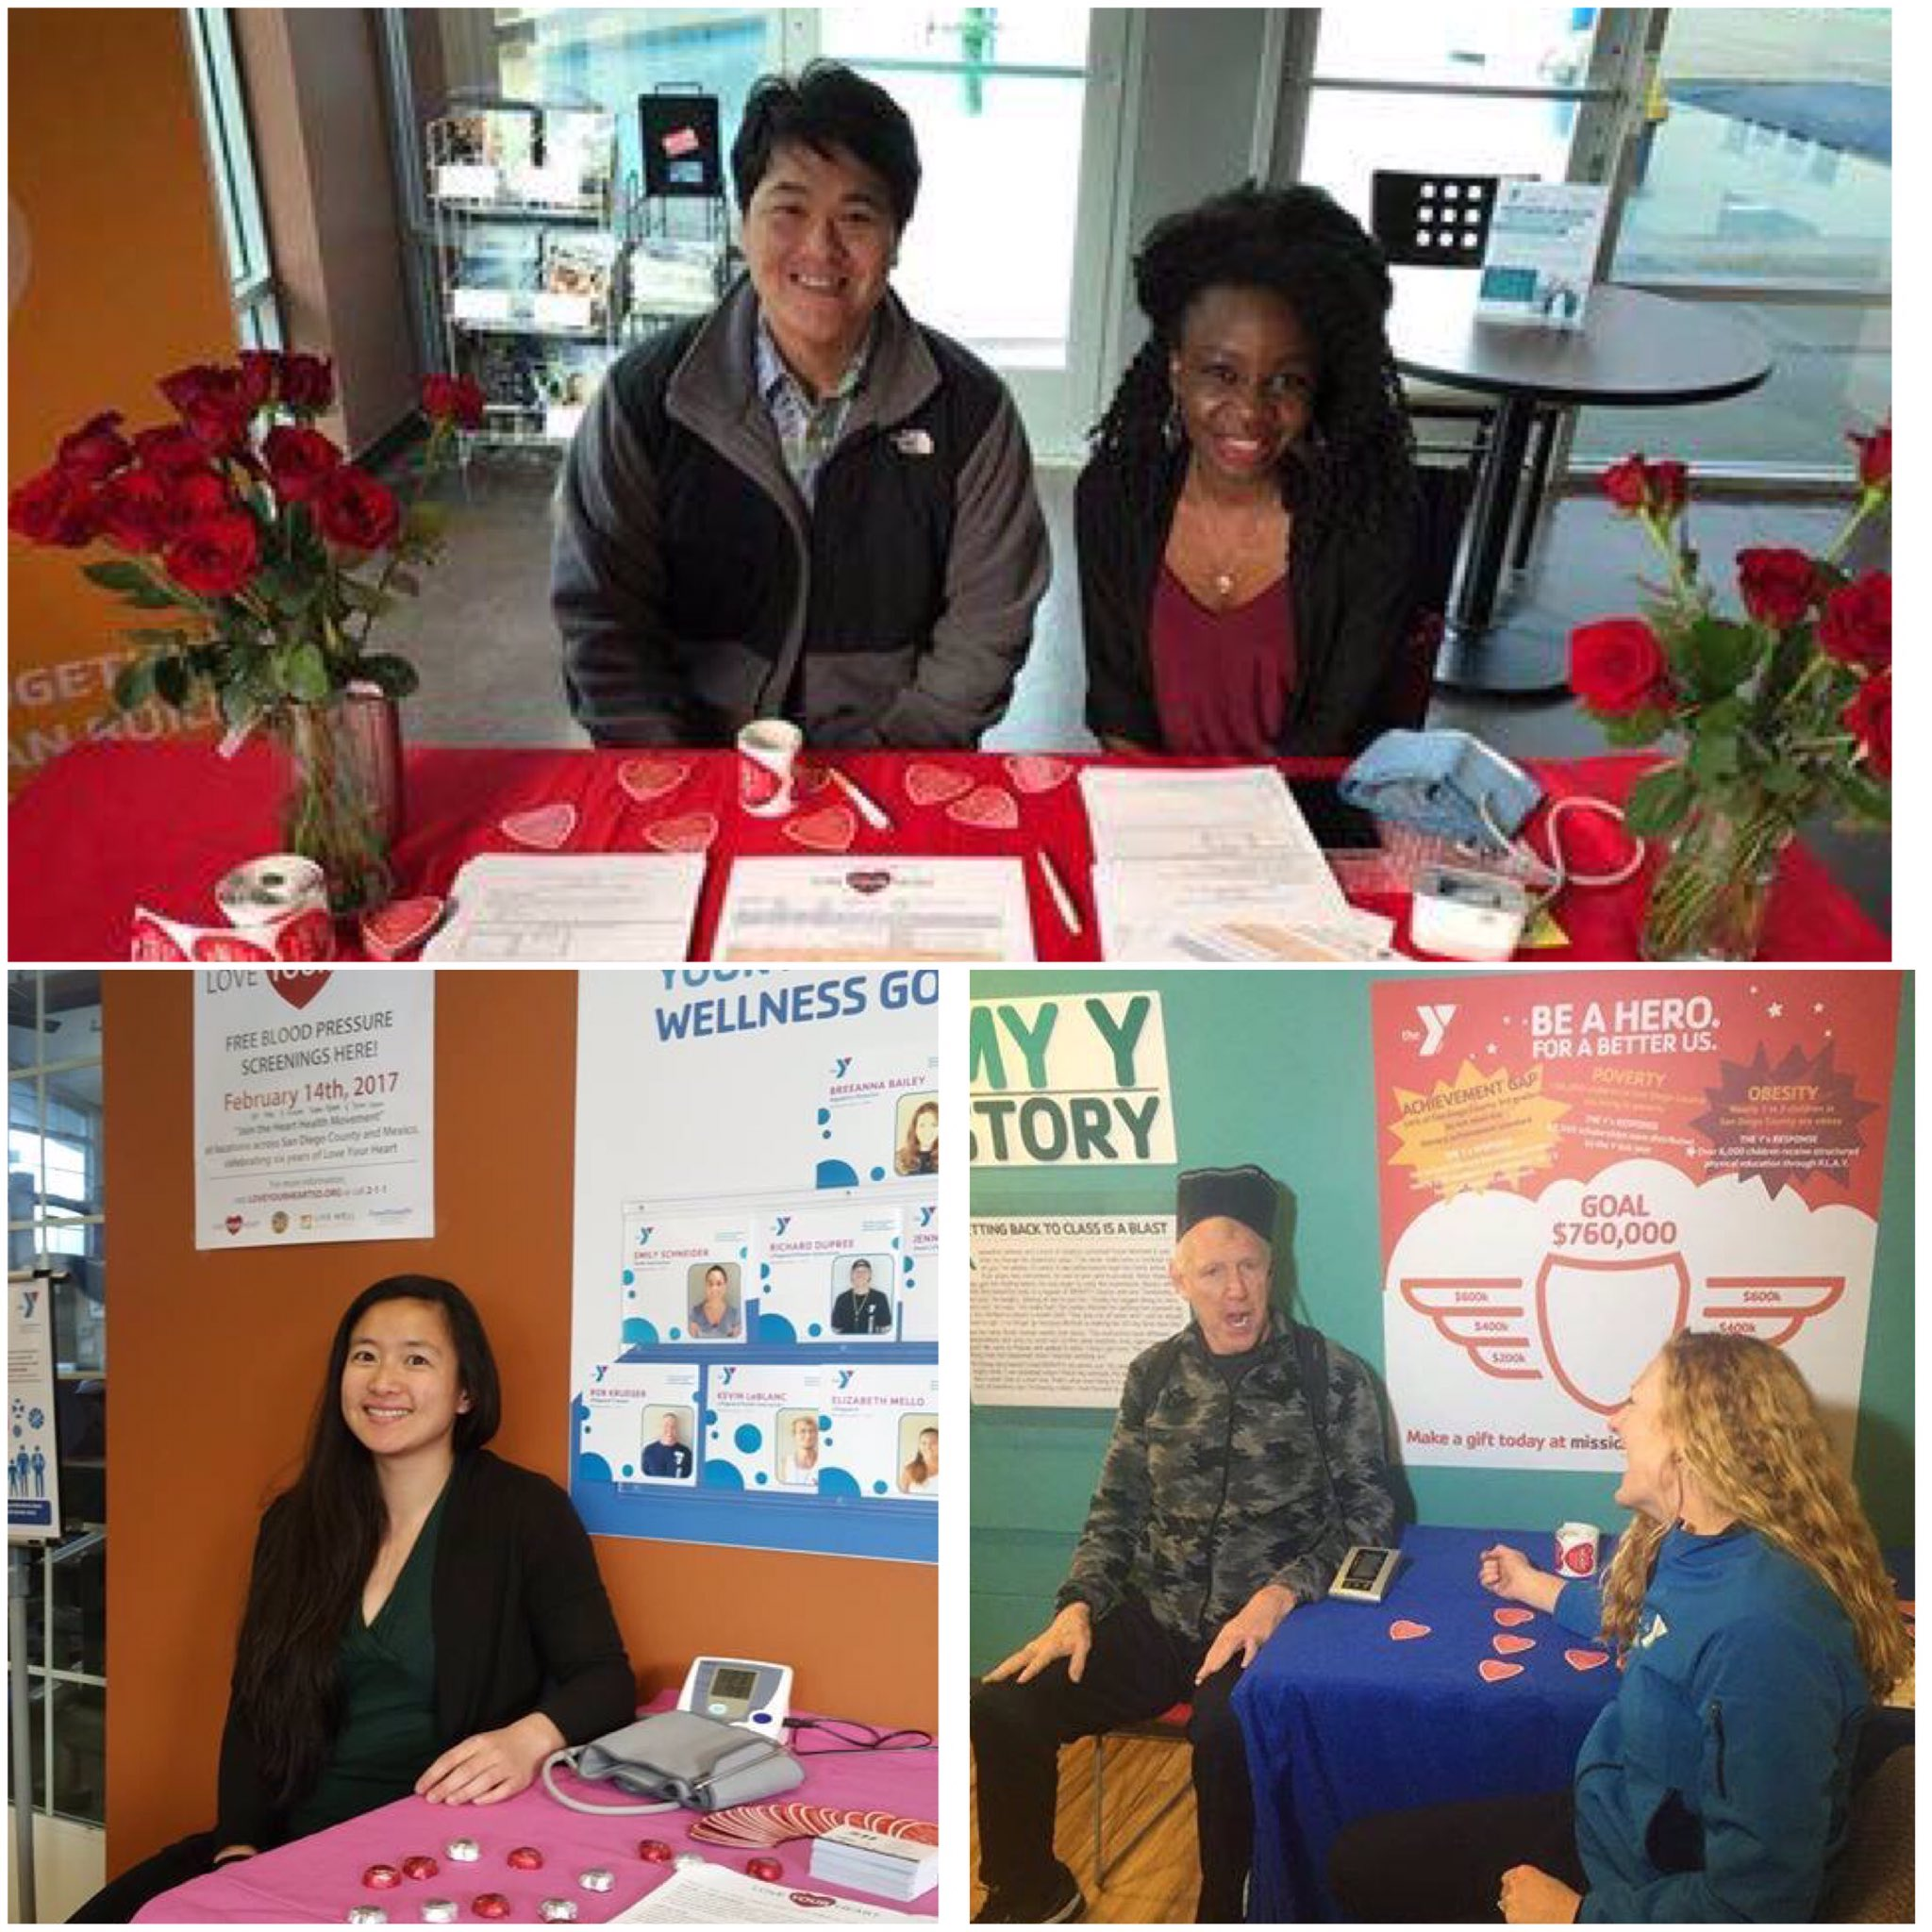 We ❤️'d spending #ValentinesDay w/ you for #LoveYourHeart day! Still time at some Y's to get your blood pressure checked! @livewell_sd https://t.co/Vj4yIenOCf